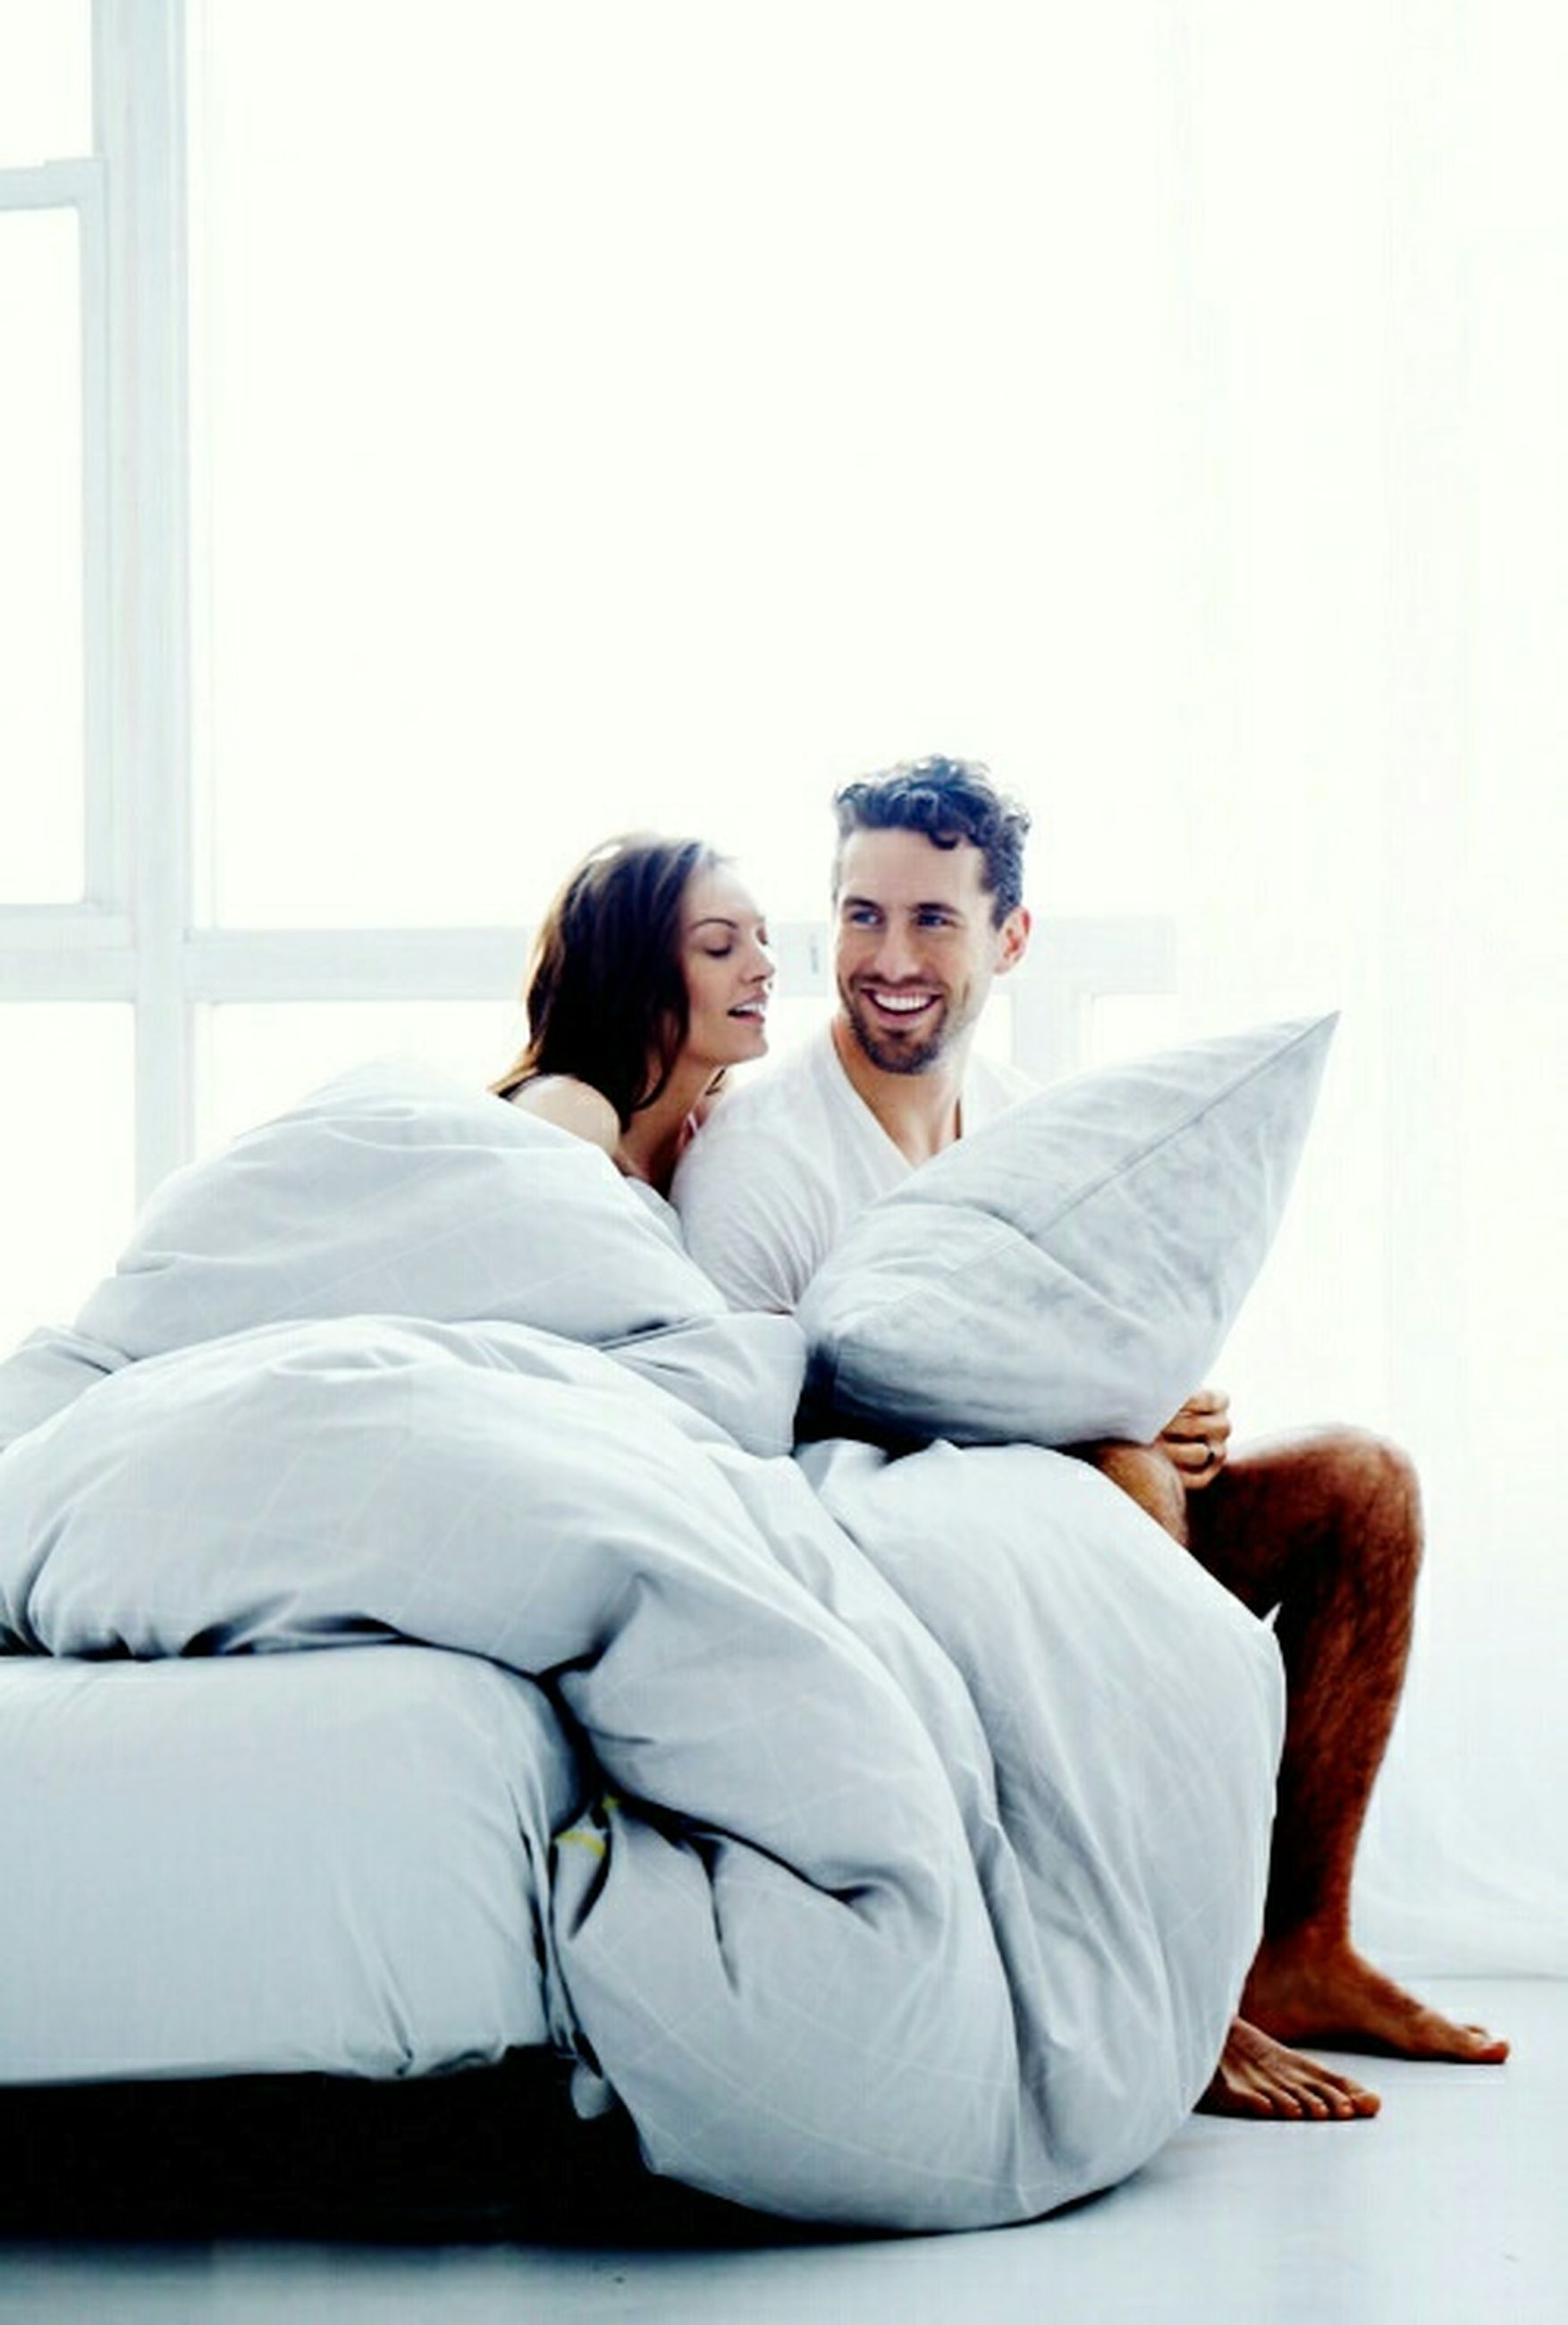 indoors, lifestyles, person, young adult, casual clothing, sitting, leisure activity, togetherness, relaxation, three quarter length, home interior, bonding, bed, young women, front view, sofa